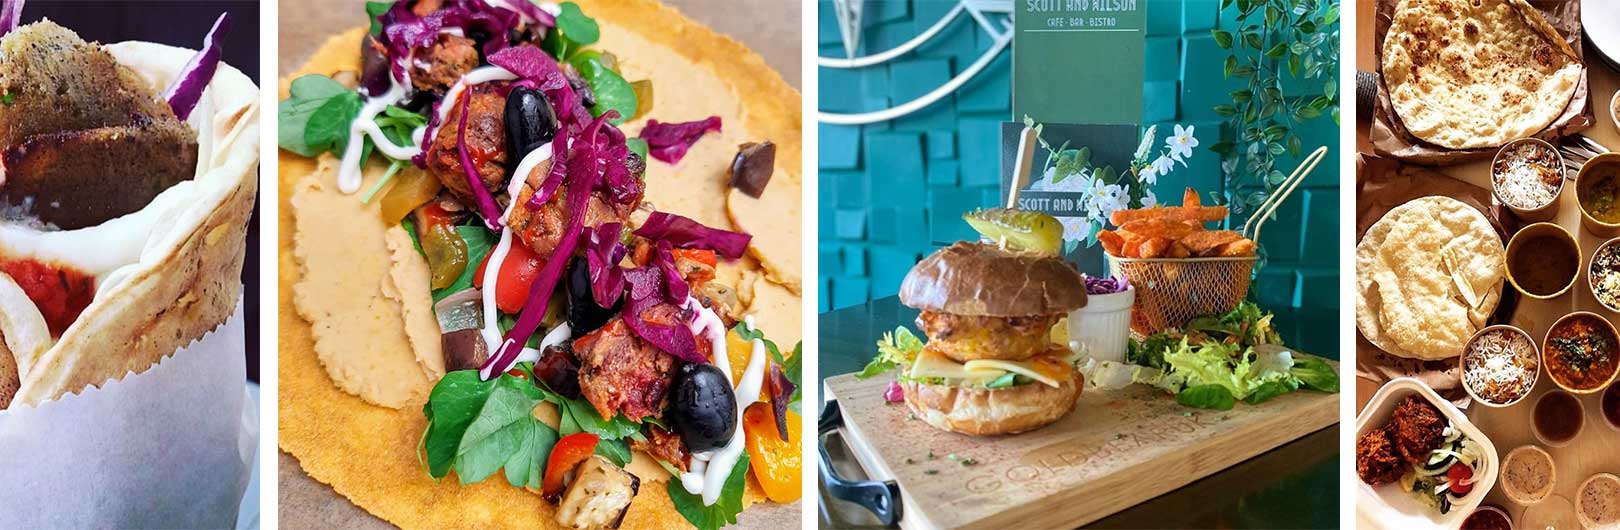 Tour of the North: The Best Places to Eat Vegan